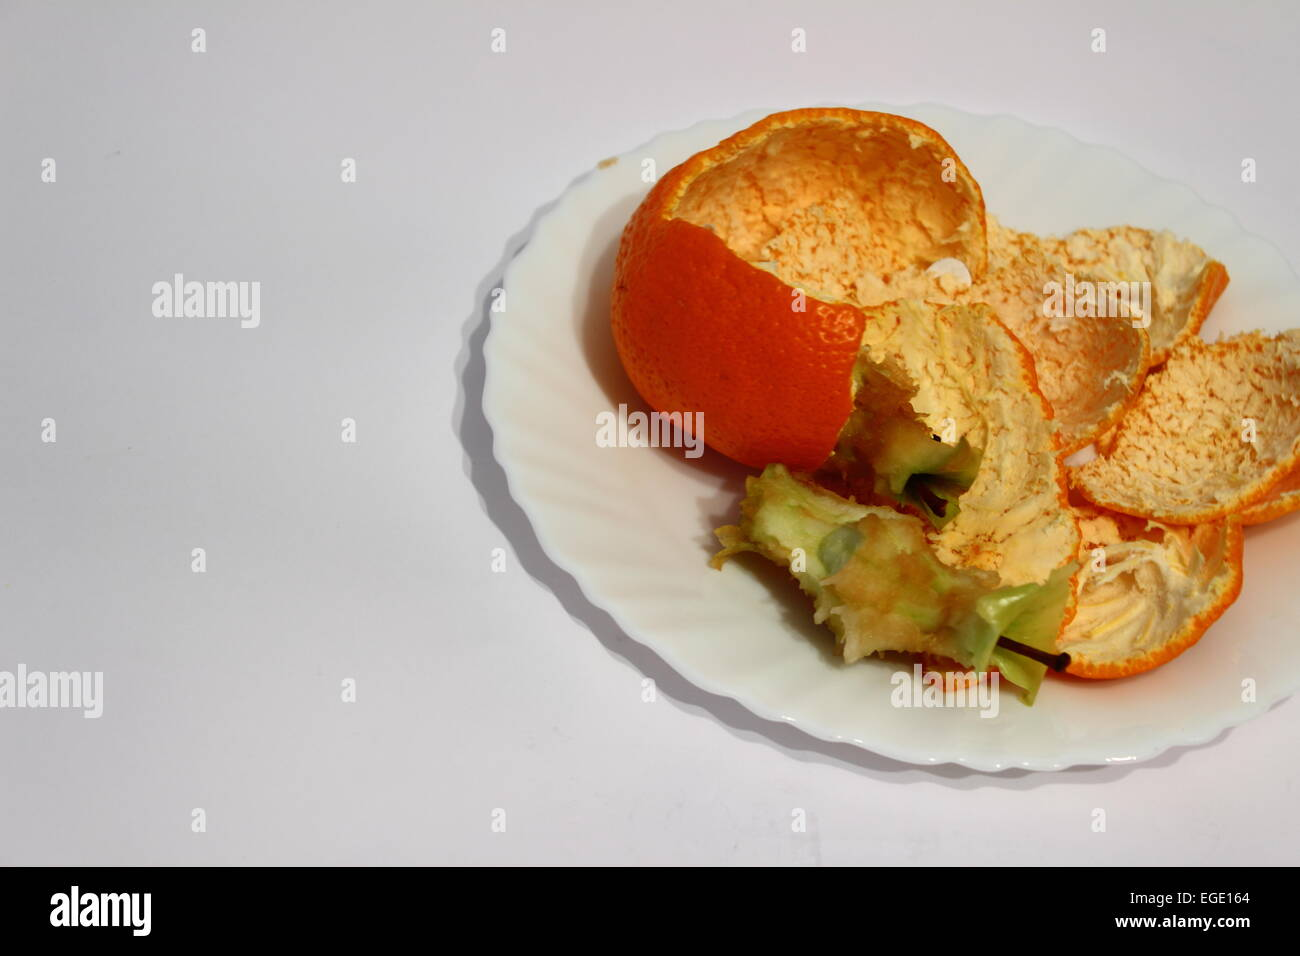 the plate lie the remains of oranges and apples - Stock Image